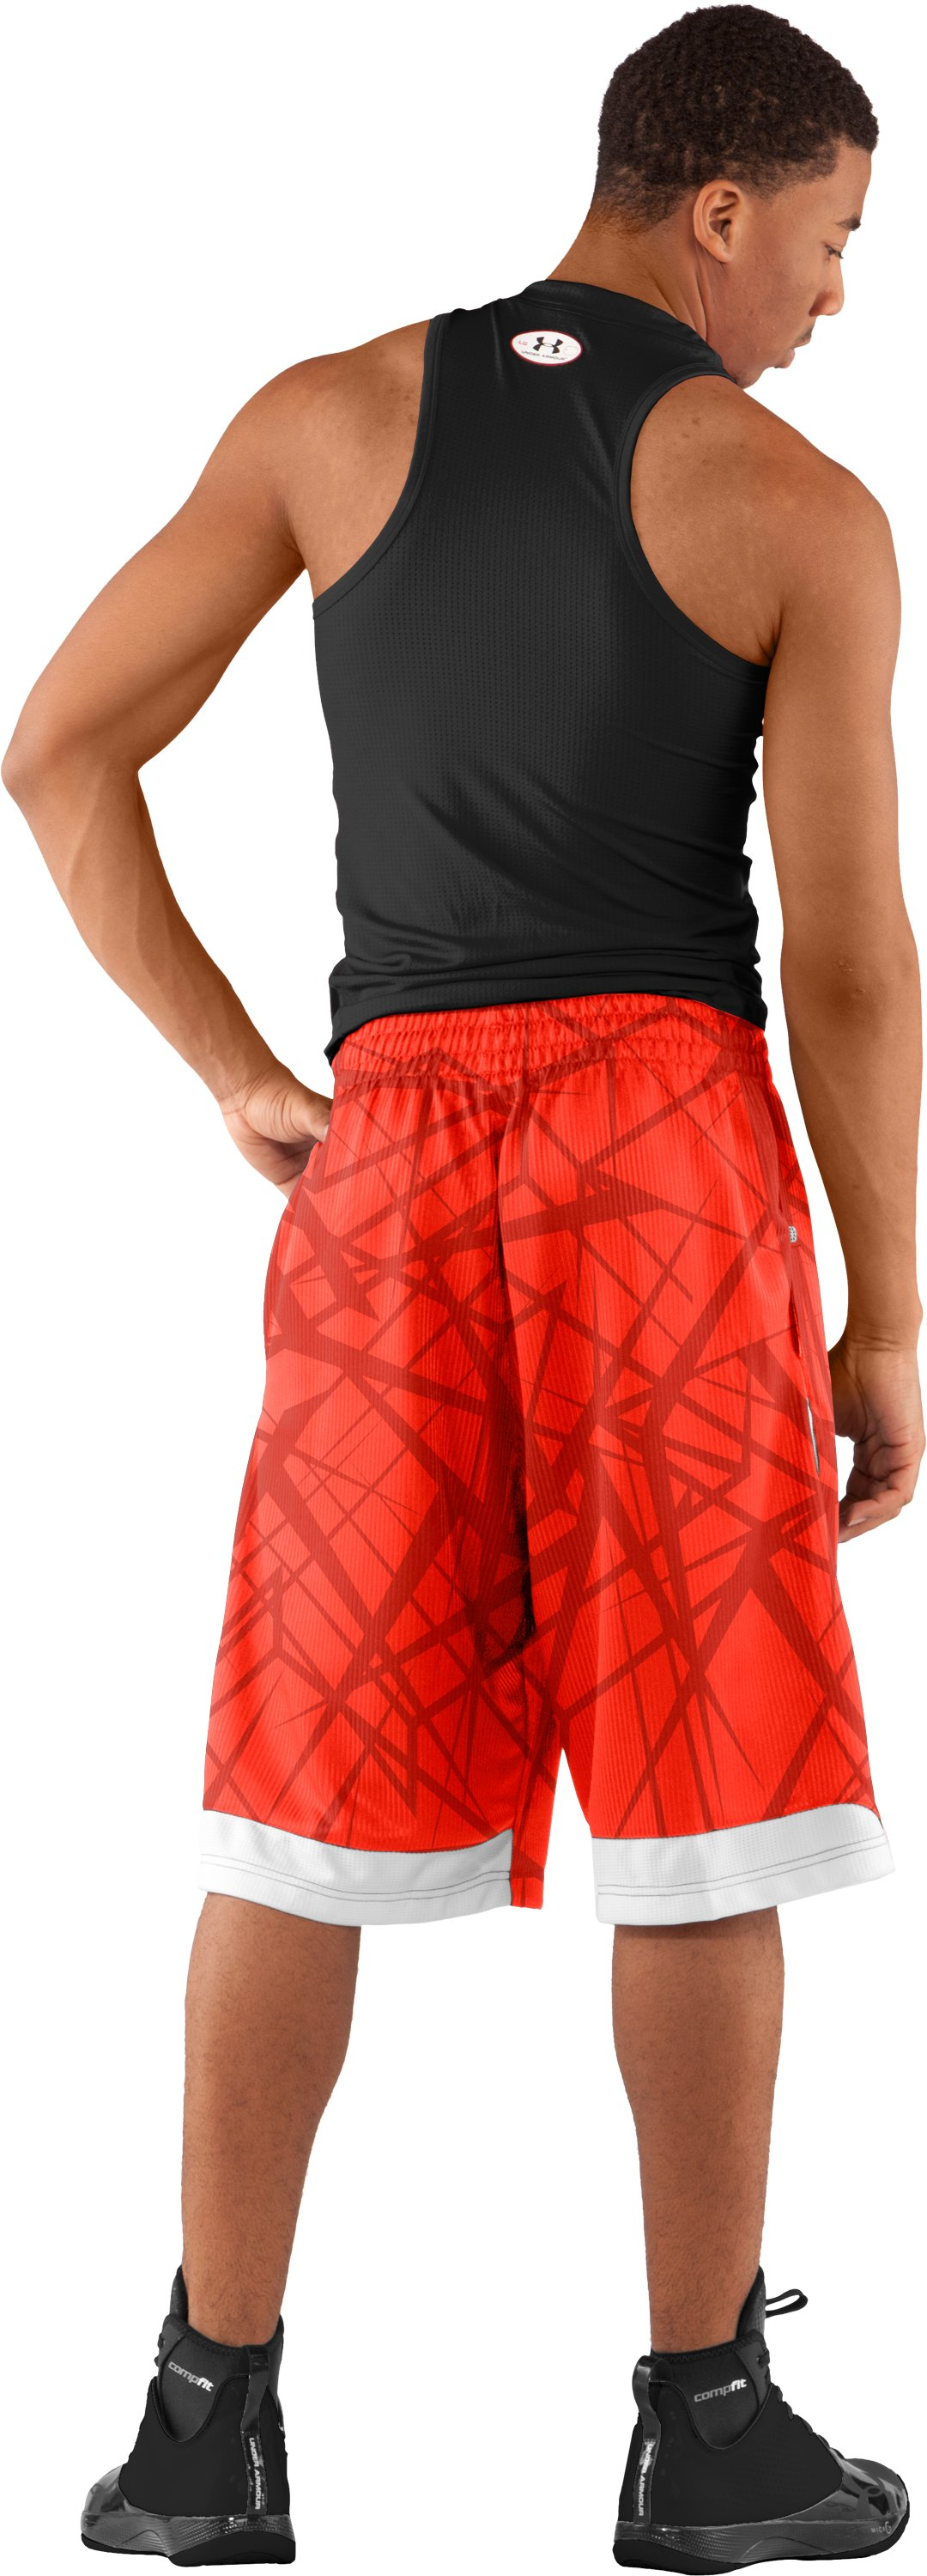 "Men's Printed UA Valkyrie 12"" Basketball Shorts, Fuego, Back"